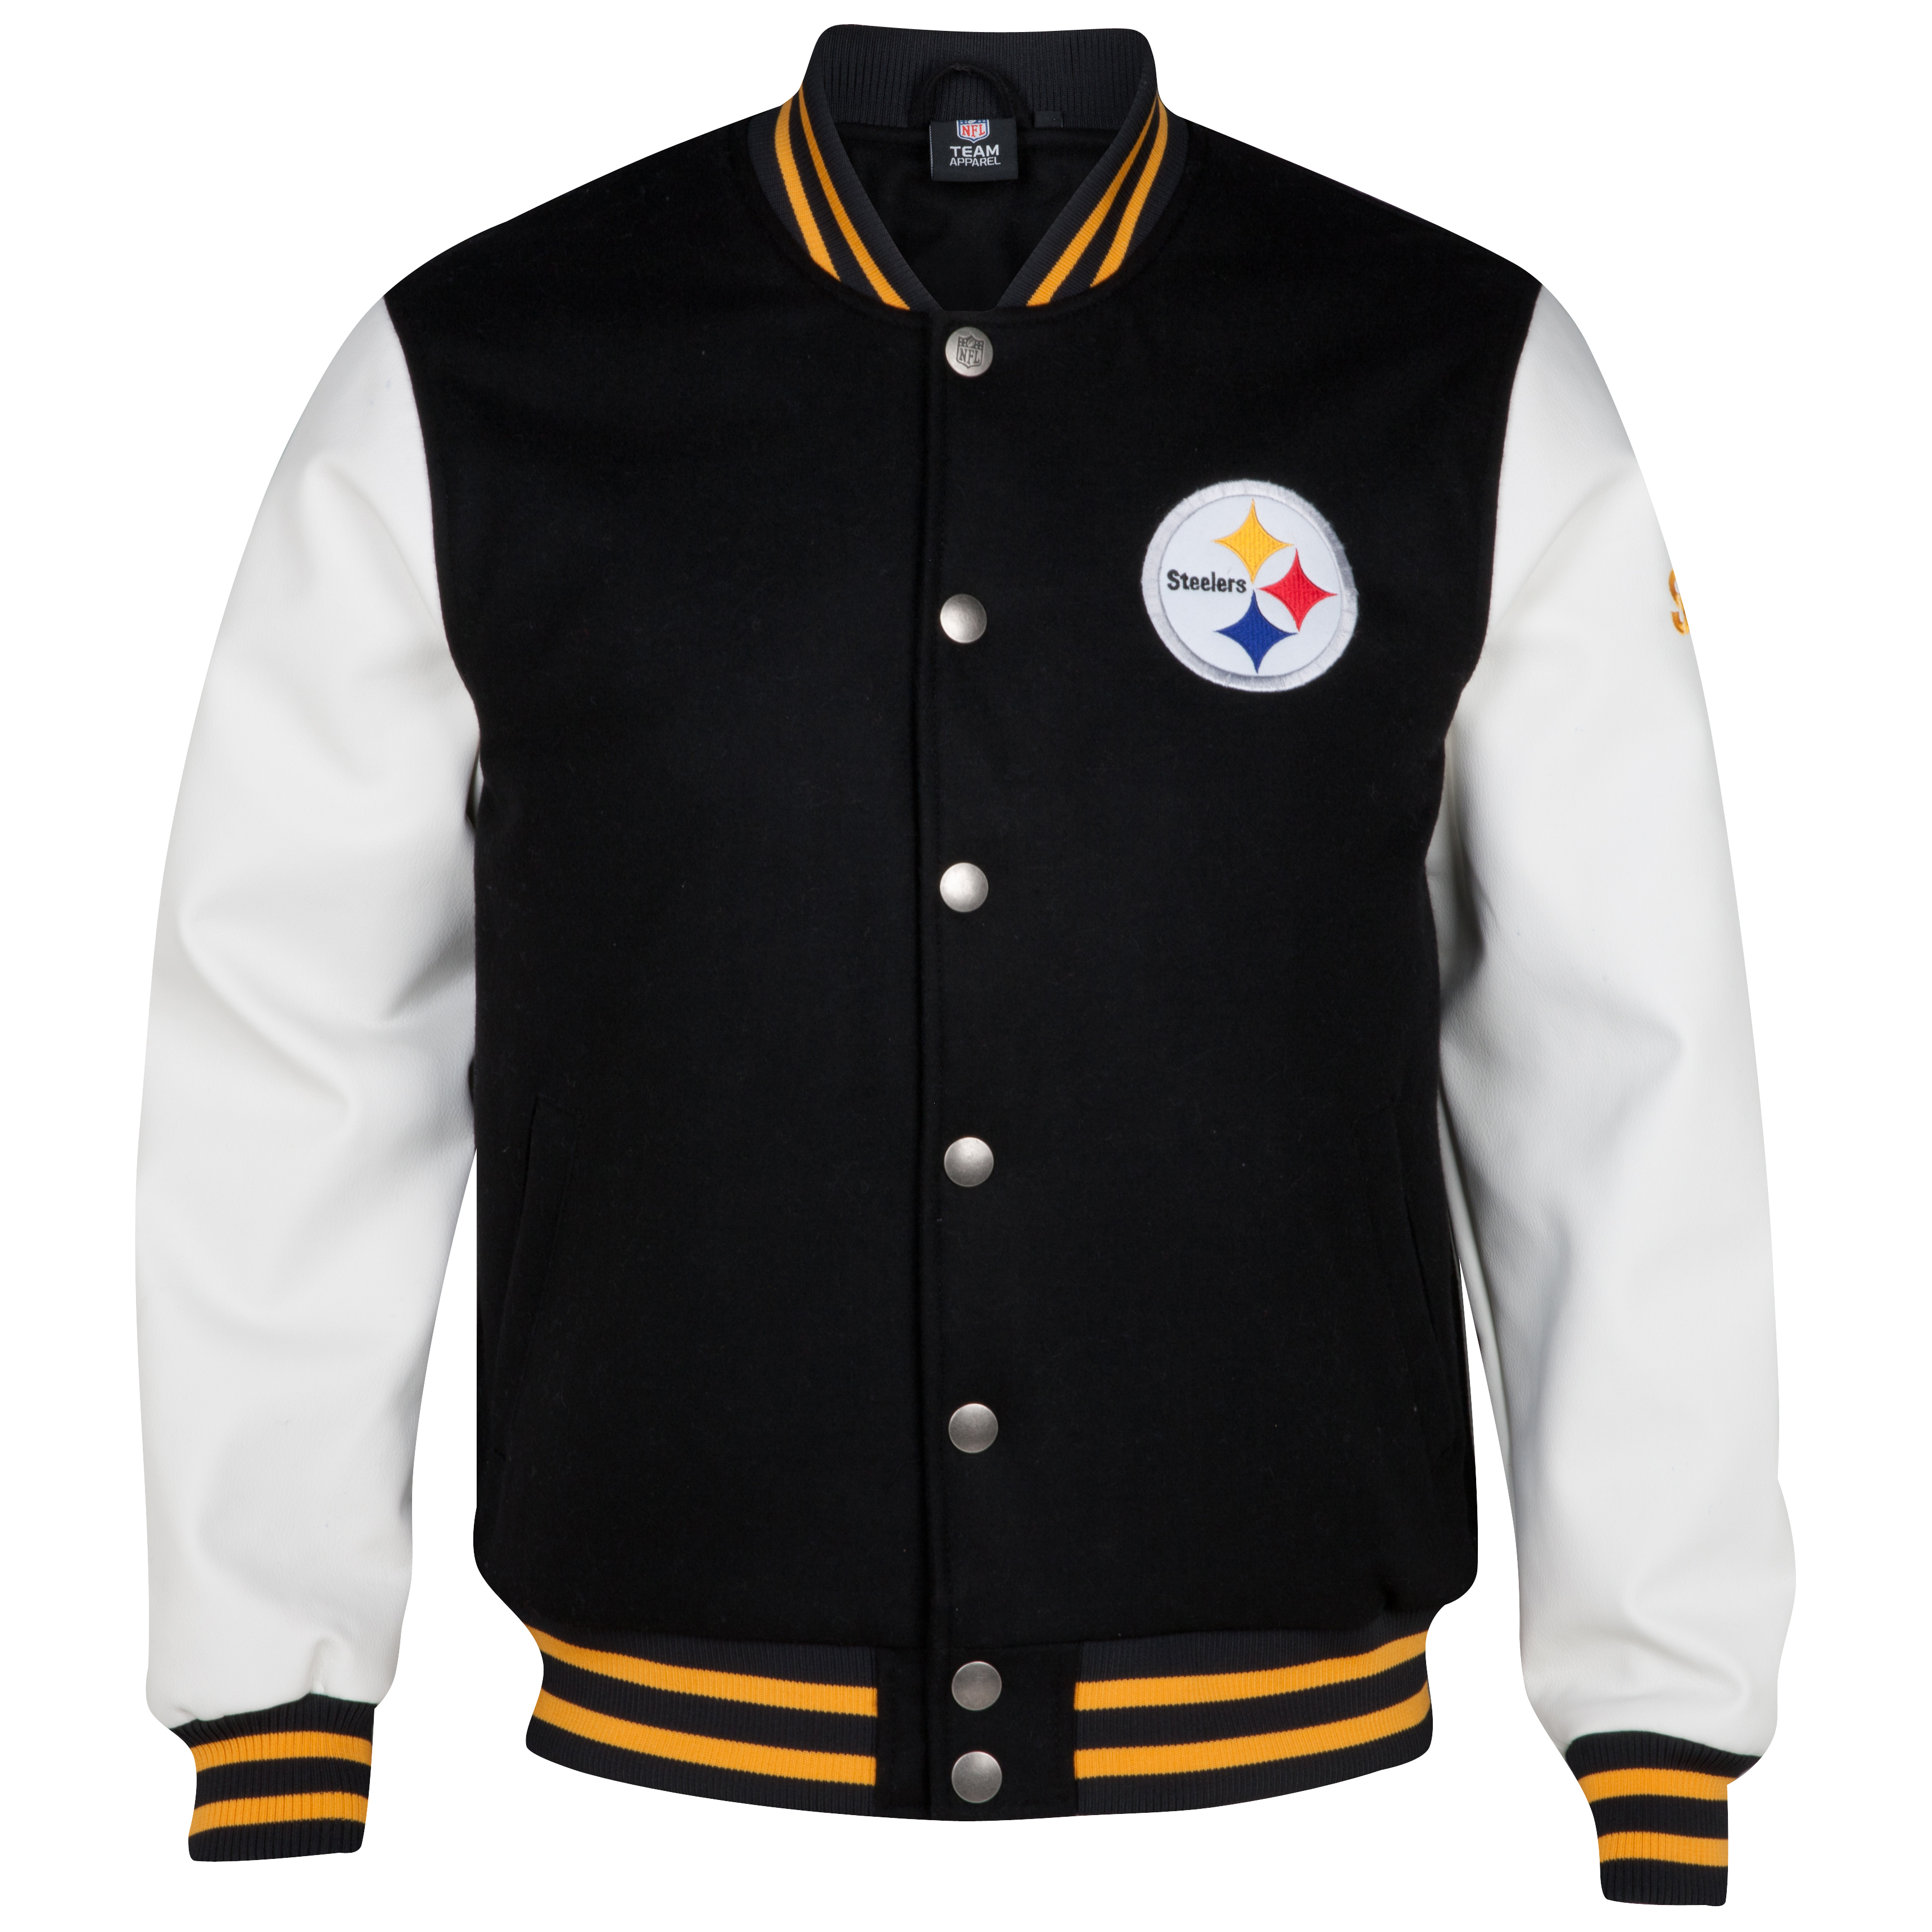 Pittsburgh Steelers Balfour Letterman Jacket